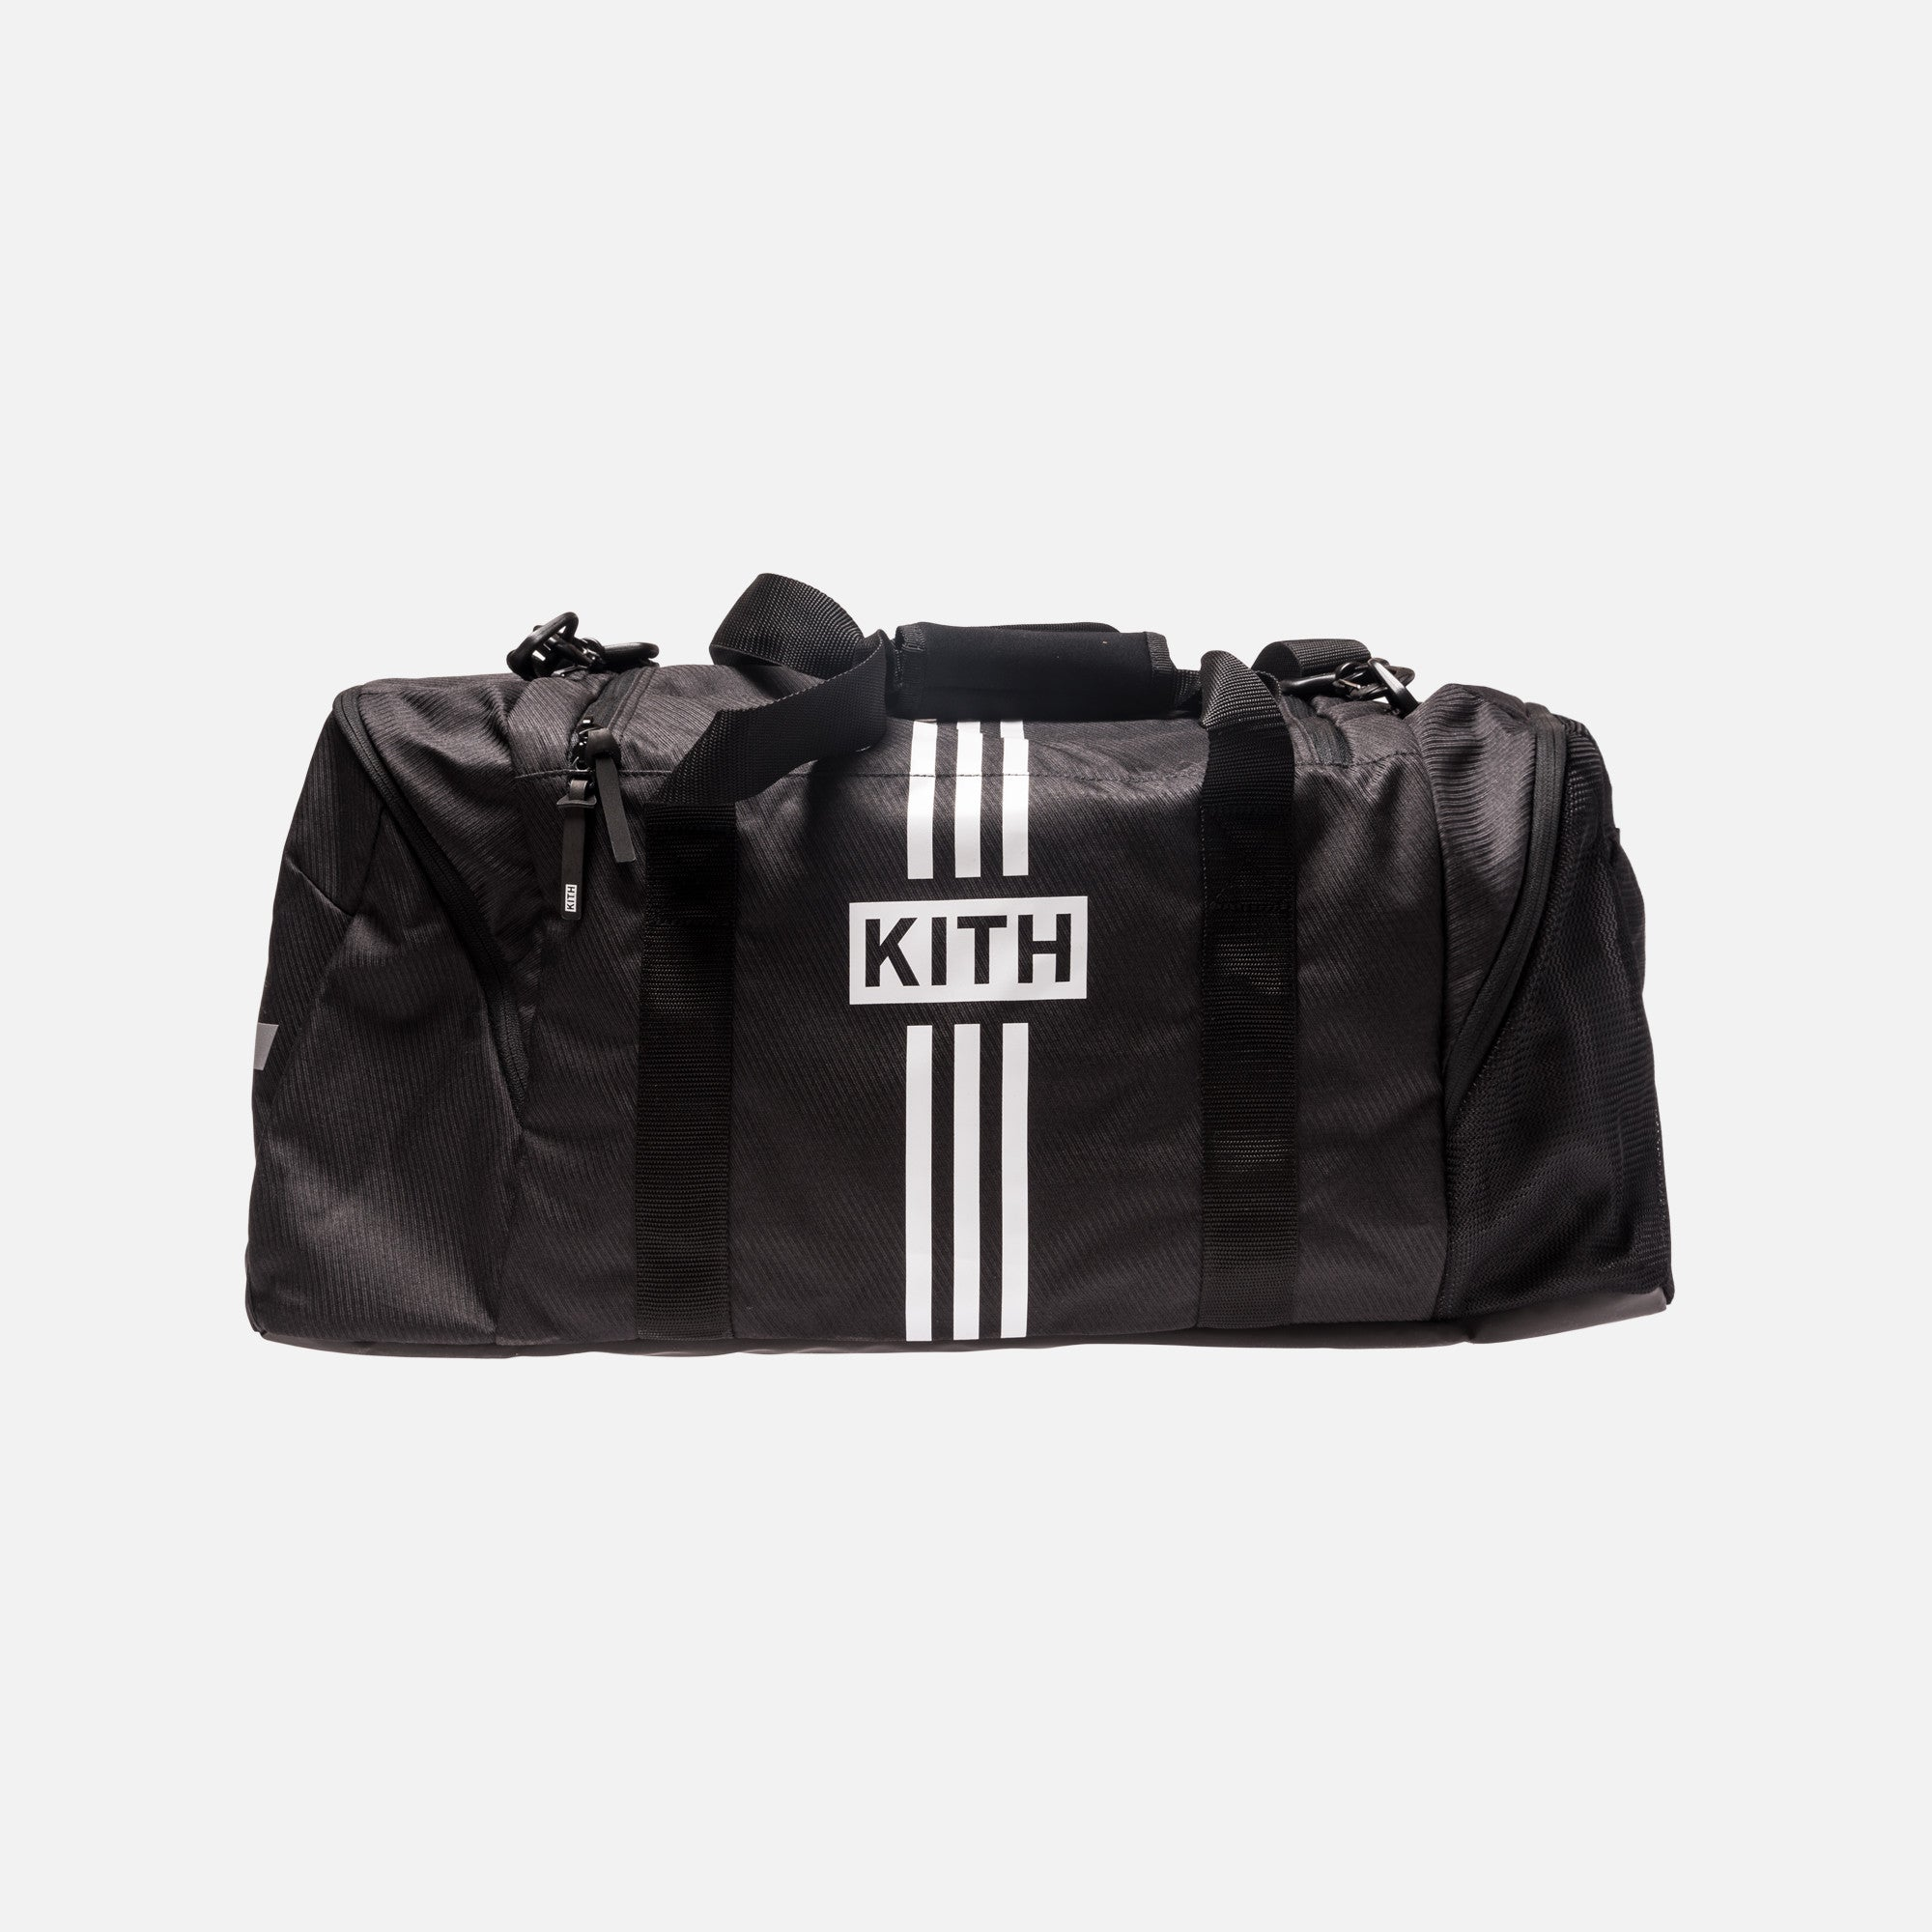 0c4ffe054e31 Buy adidas black duffle bag   OFF55% Discounted